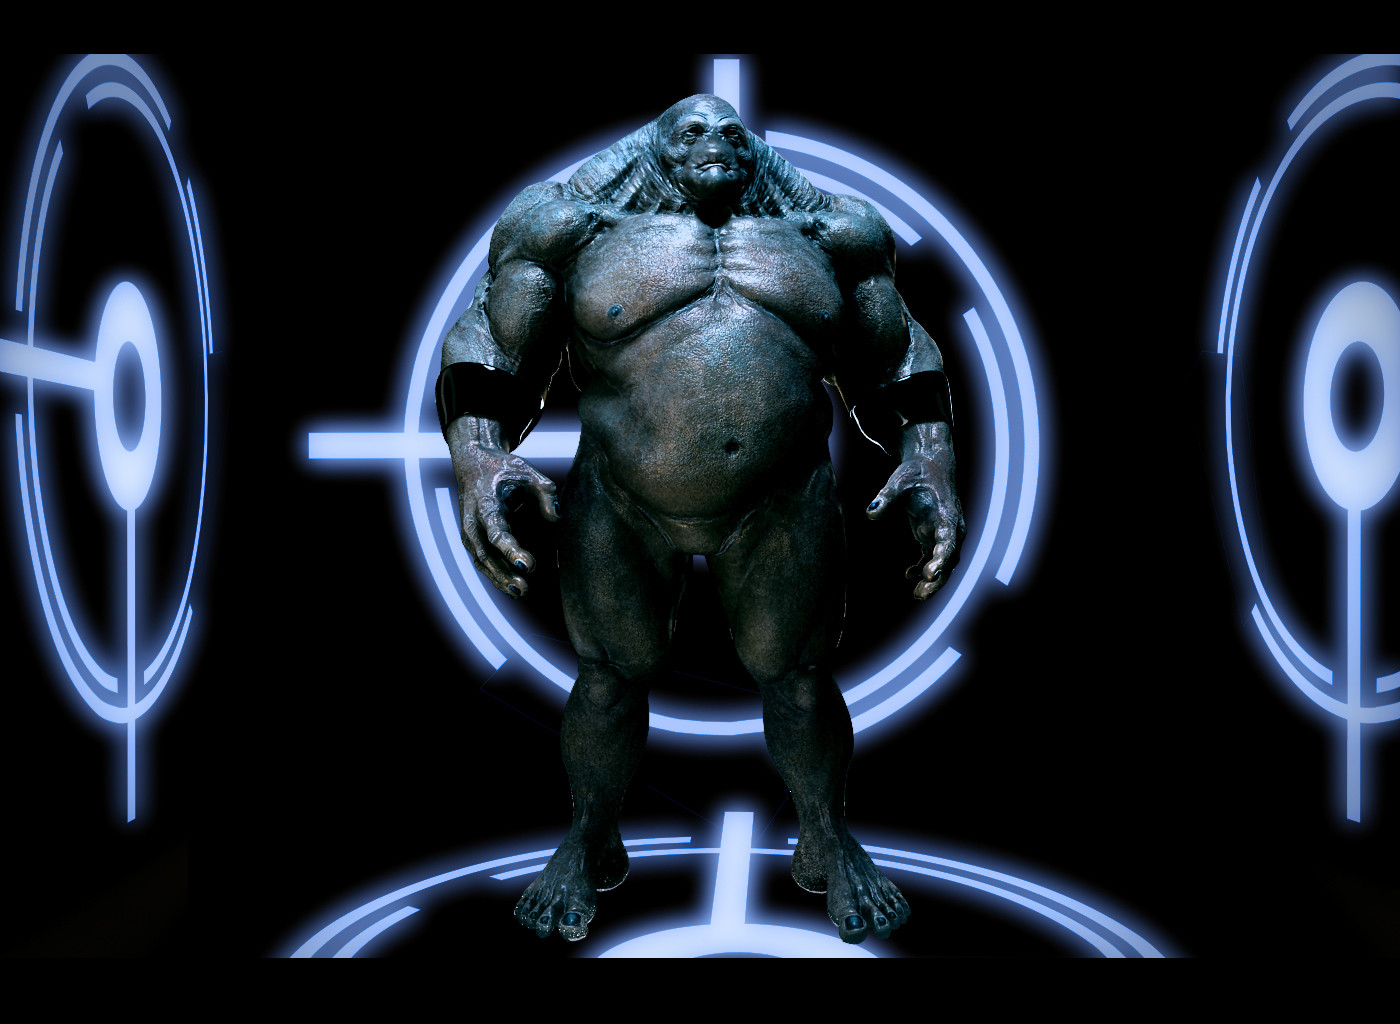 'Big Blue' done for Autodesk siggraph masterclass 2009 / 2010